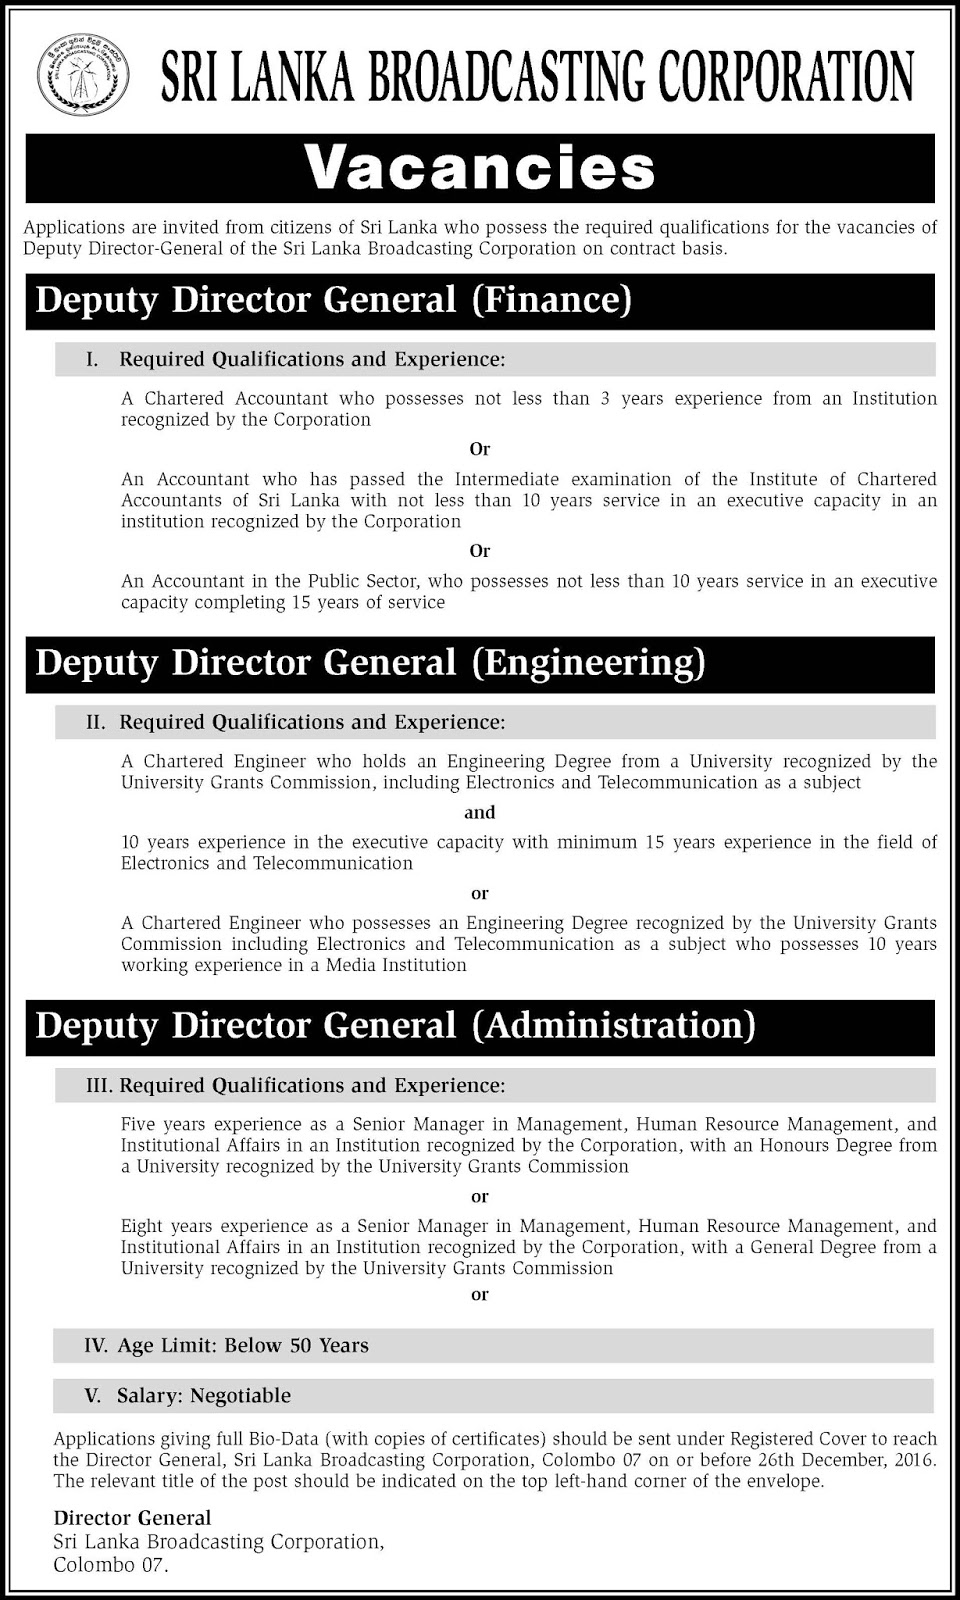 Sri Lankan Government Job Vacancies at SLBC - Sri Lanka Broadcasting Corporation for Deputy Director Generals.